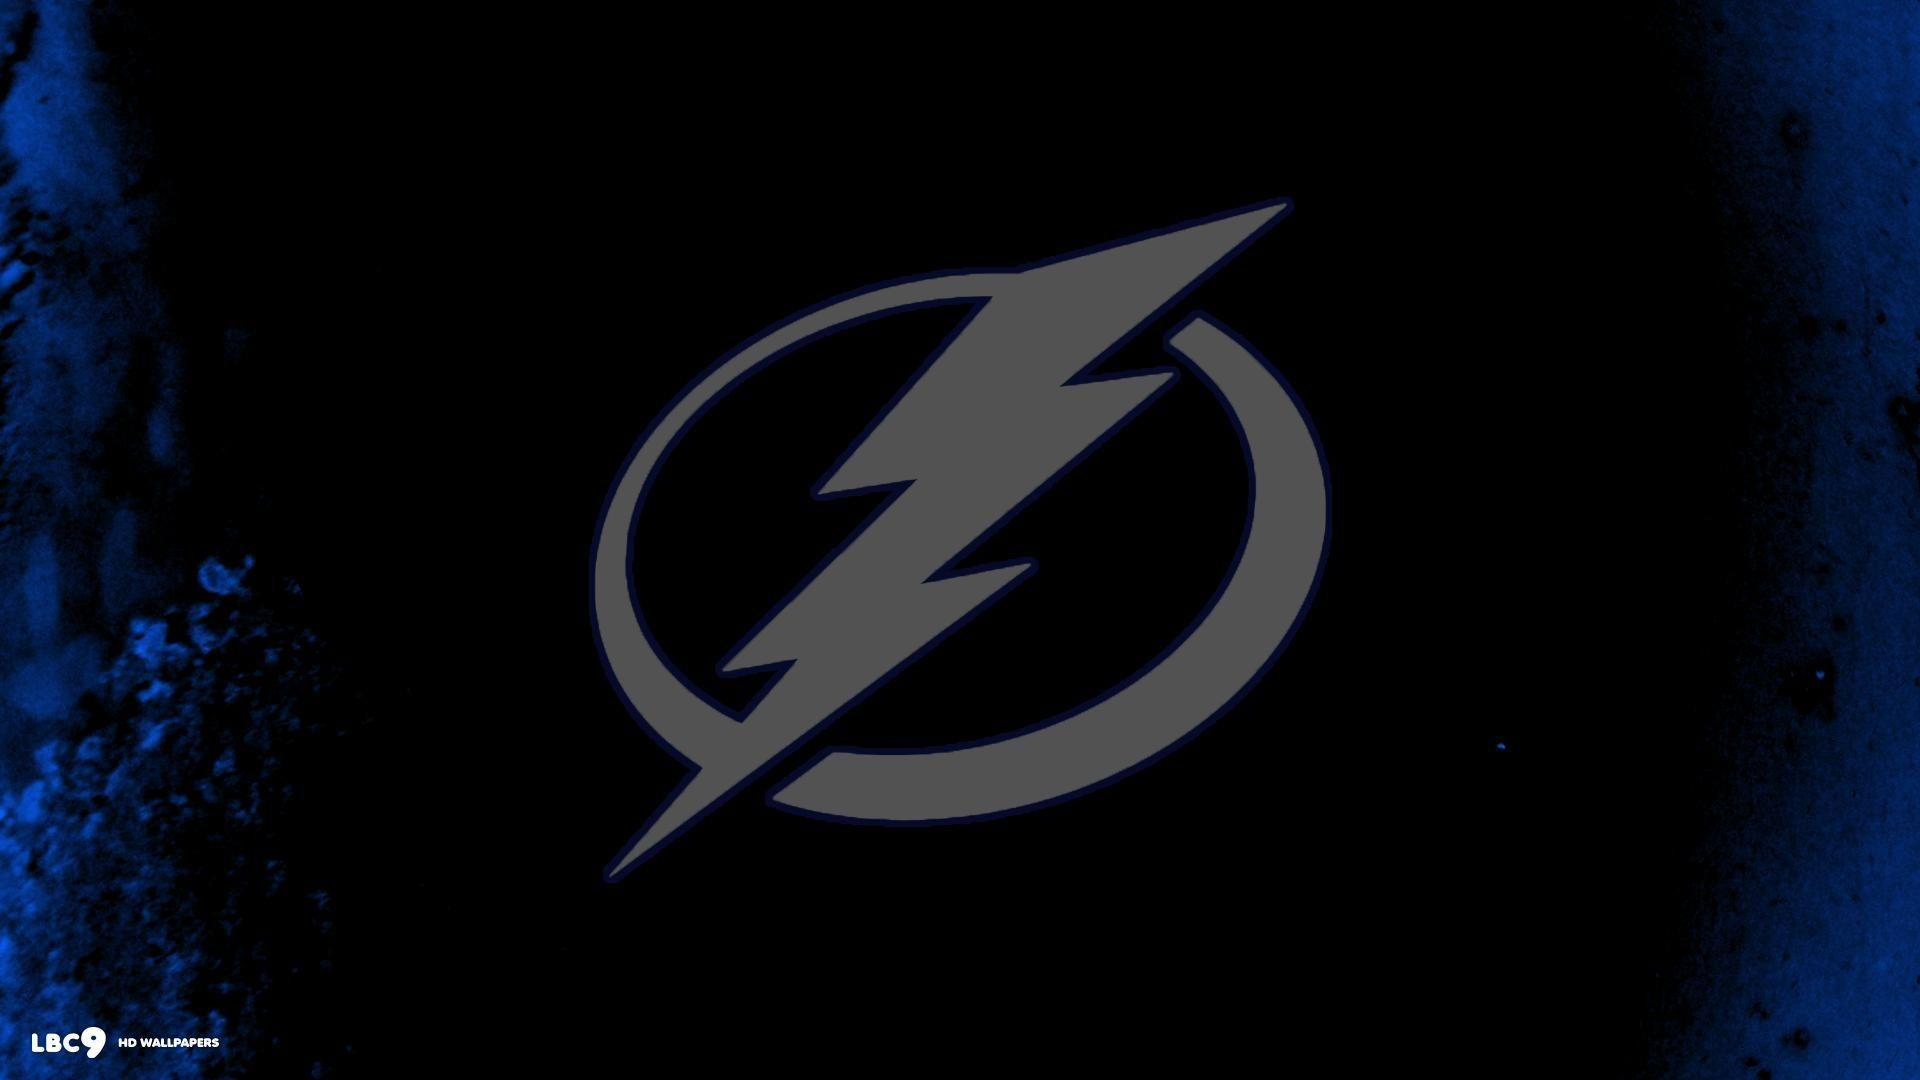 Tampa bay lightning wallpapers wallpaper cave - Tampa bay lightning wallpaper 1920x1080 ...